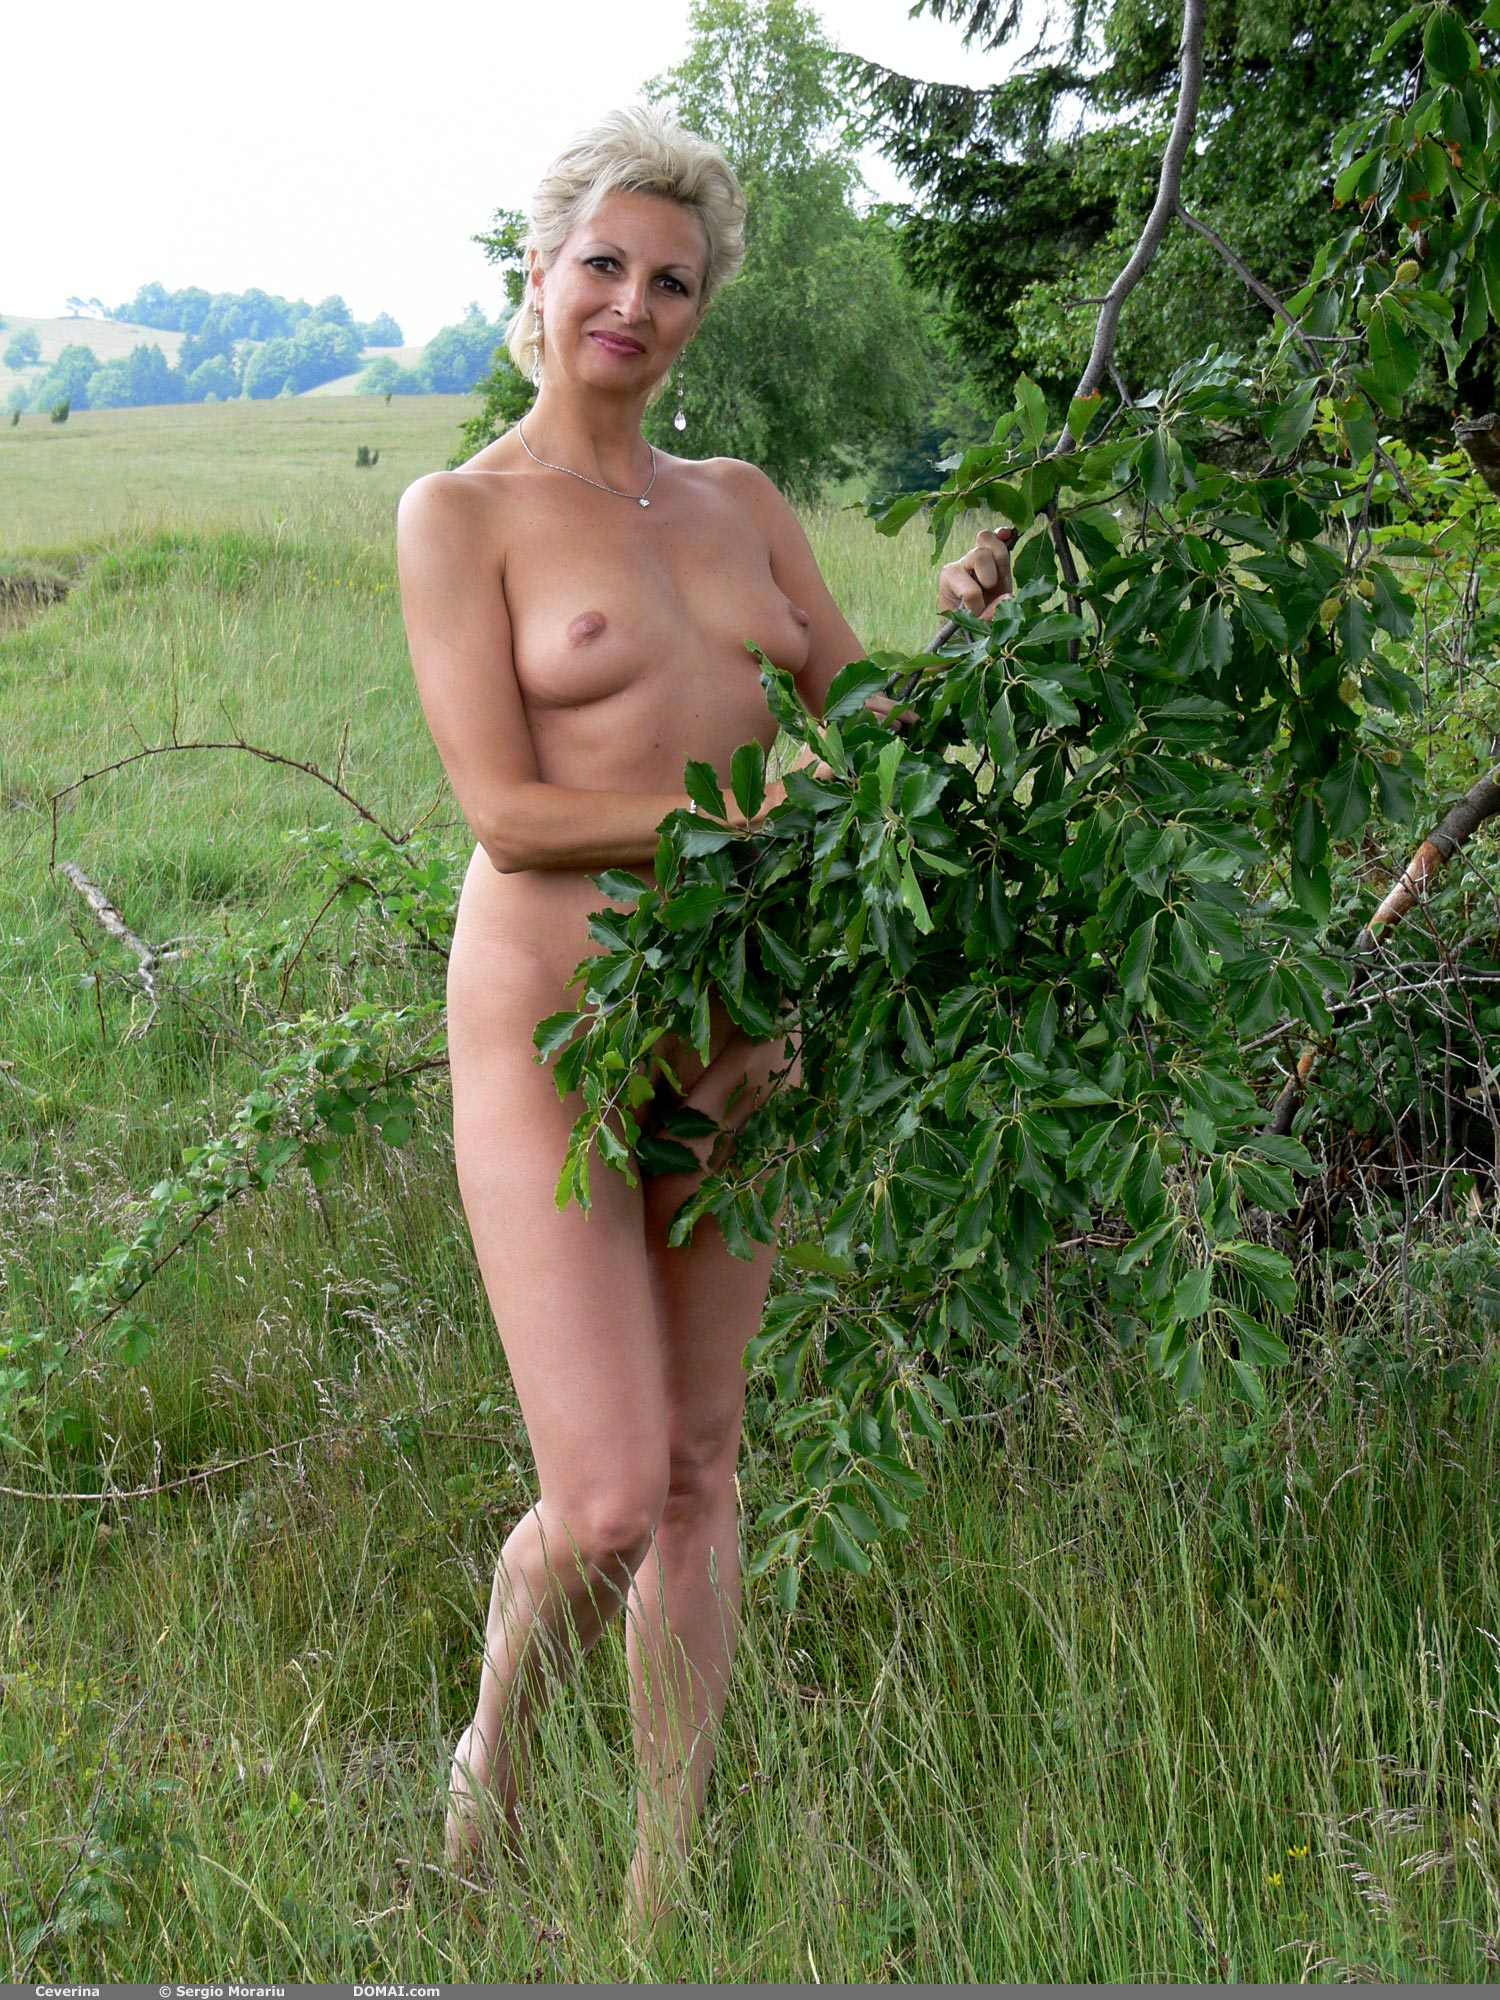 Nude women in their sixties